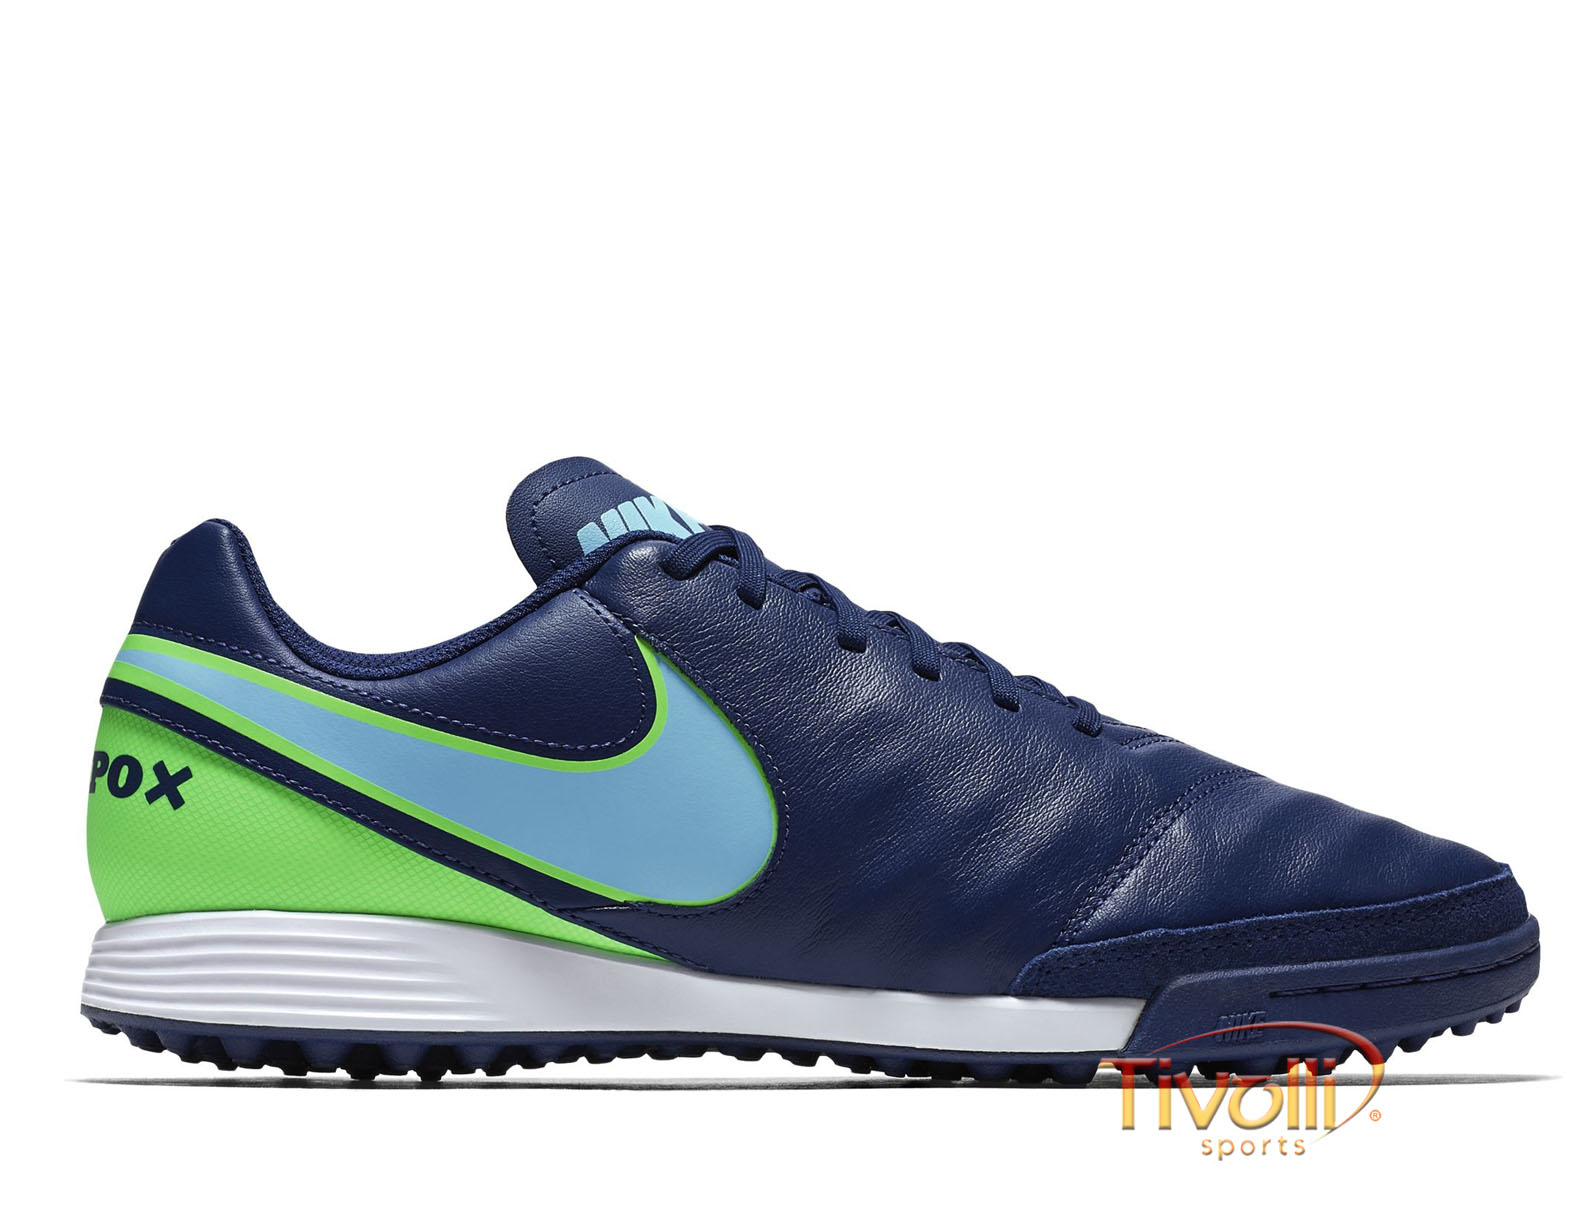 Chuteira Nike Tiempo Genio II Leather TF Society